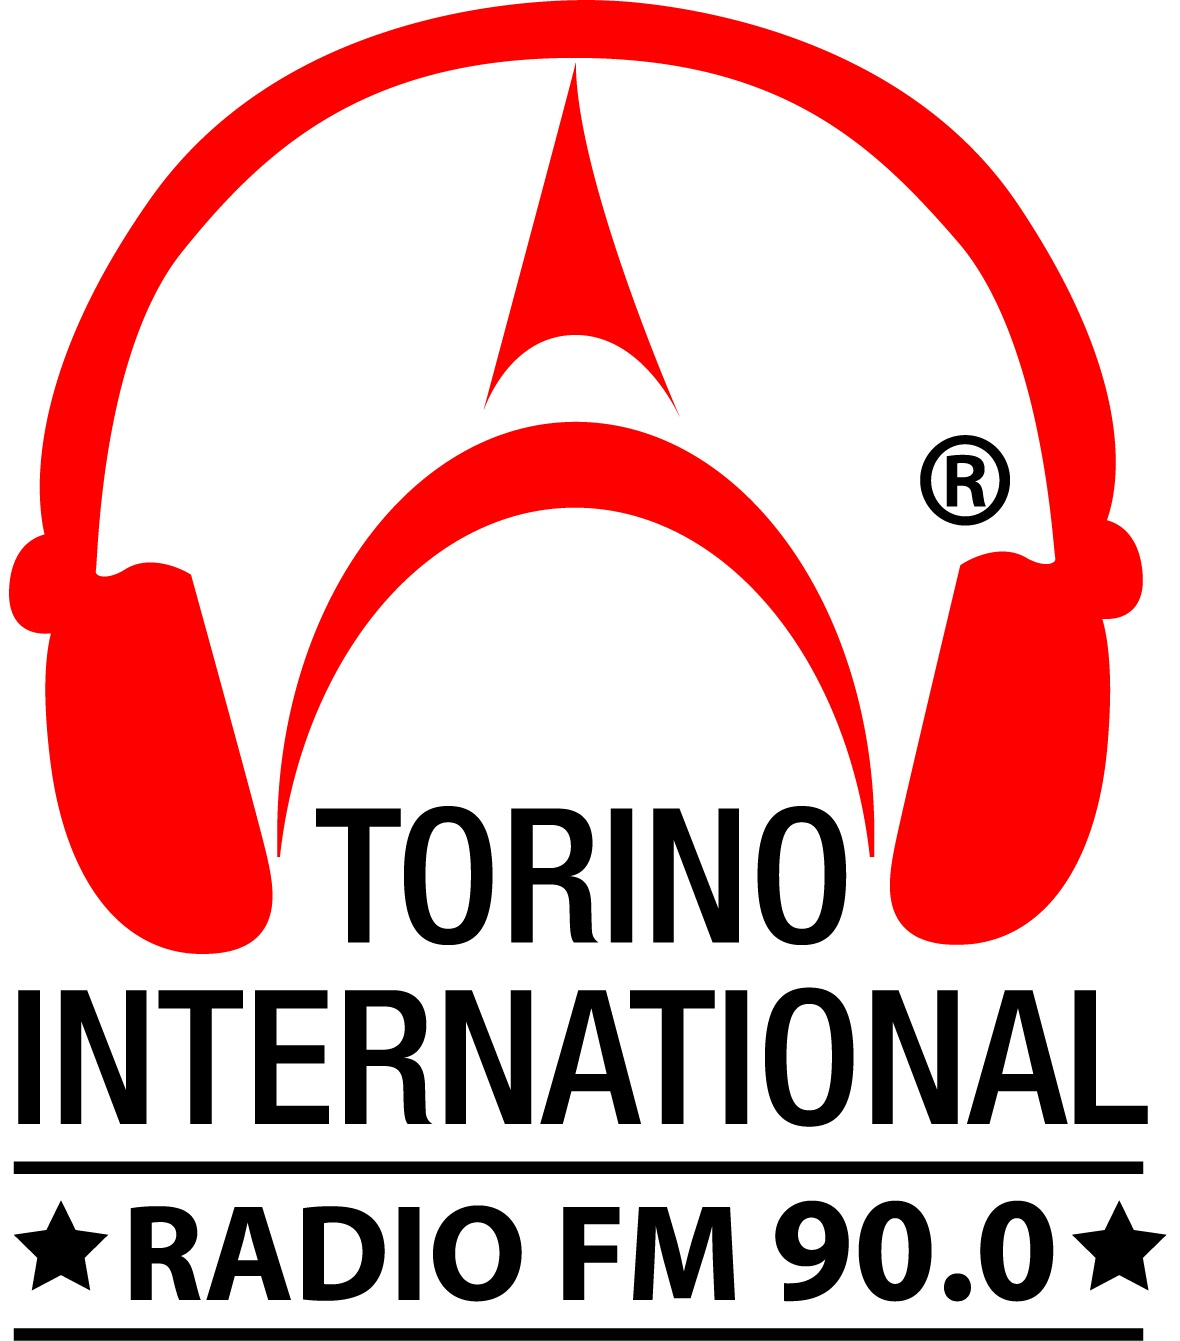 LOGO_Torino_International_2008_90FM_copy